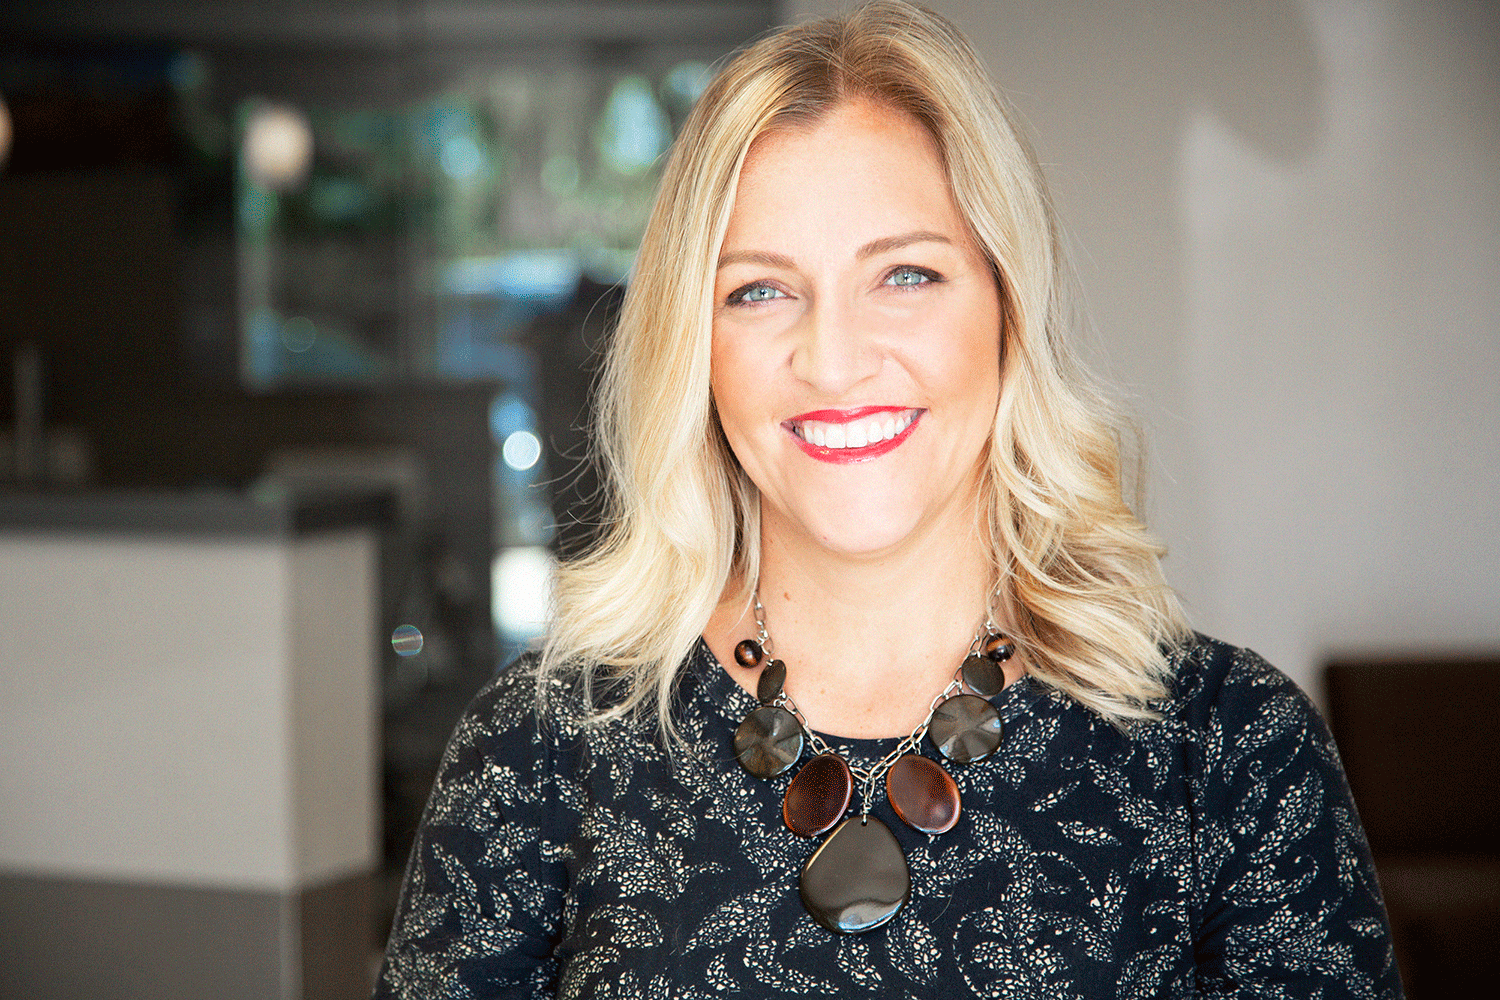 , Alice Parenti Joins TargetCW As Our New COO